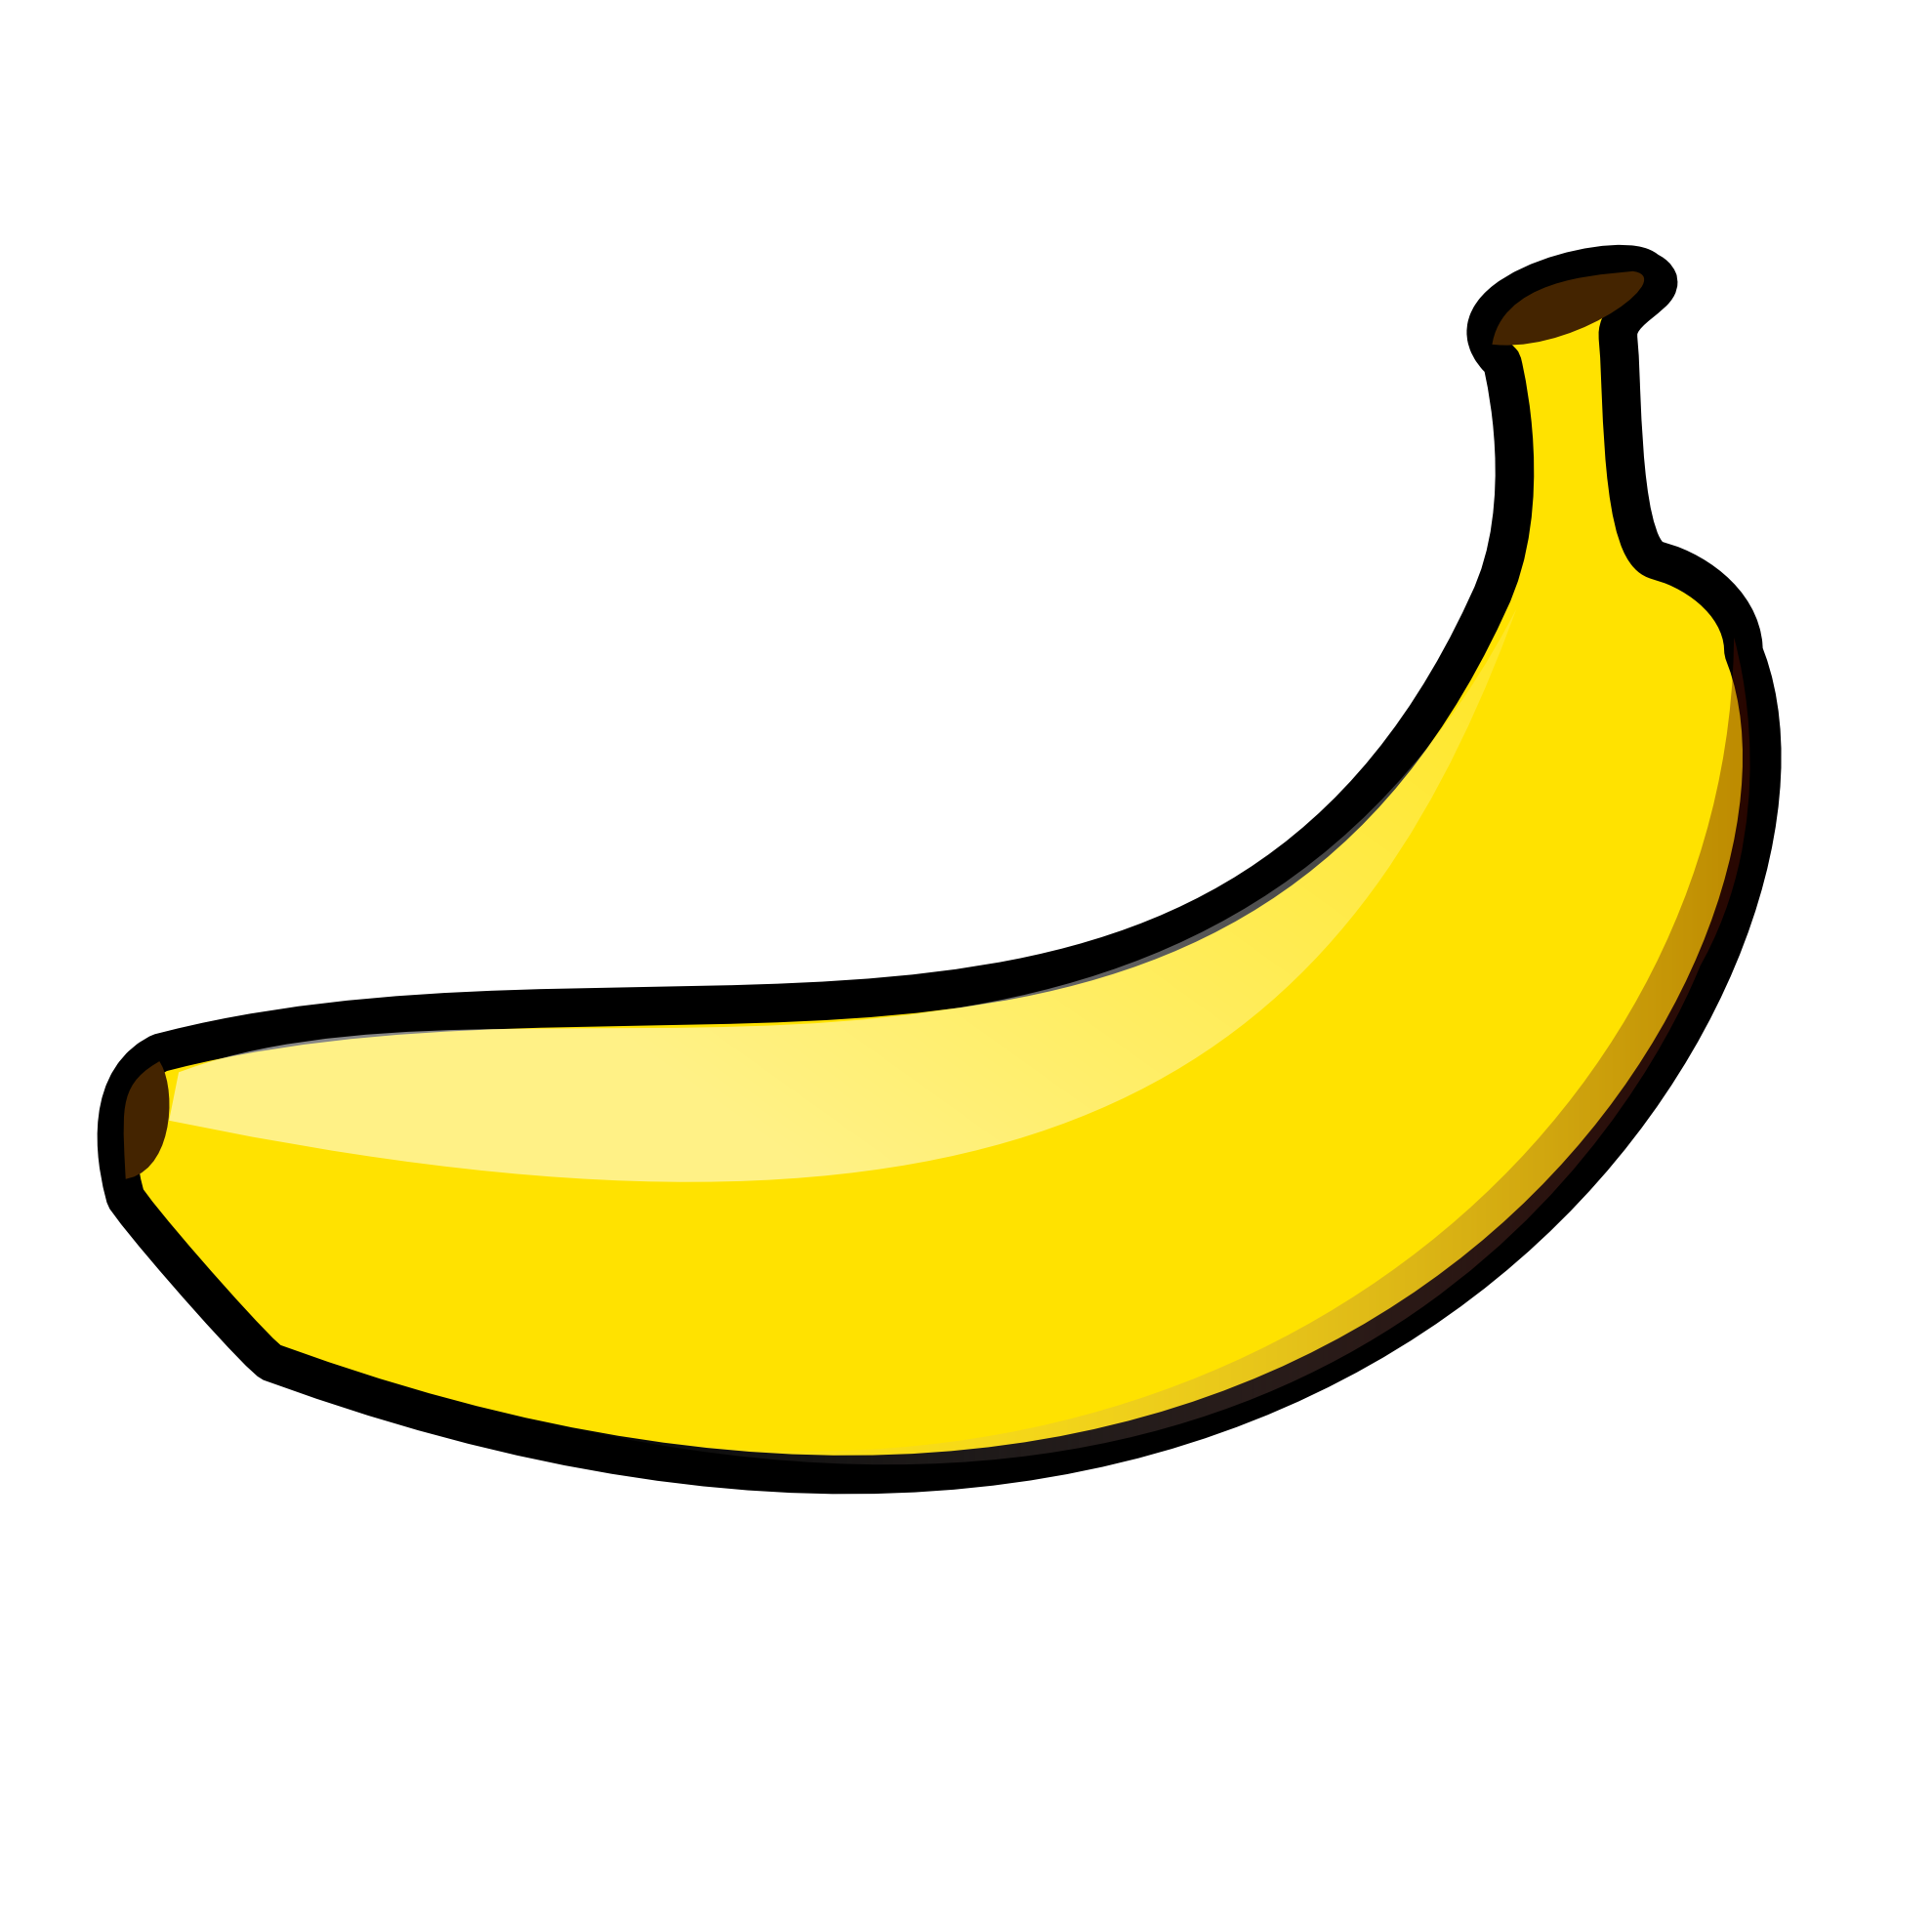 clipart royalty free library Bananas vector flat design. Banana clipart black and